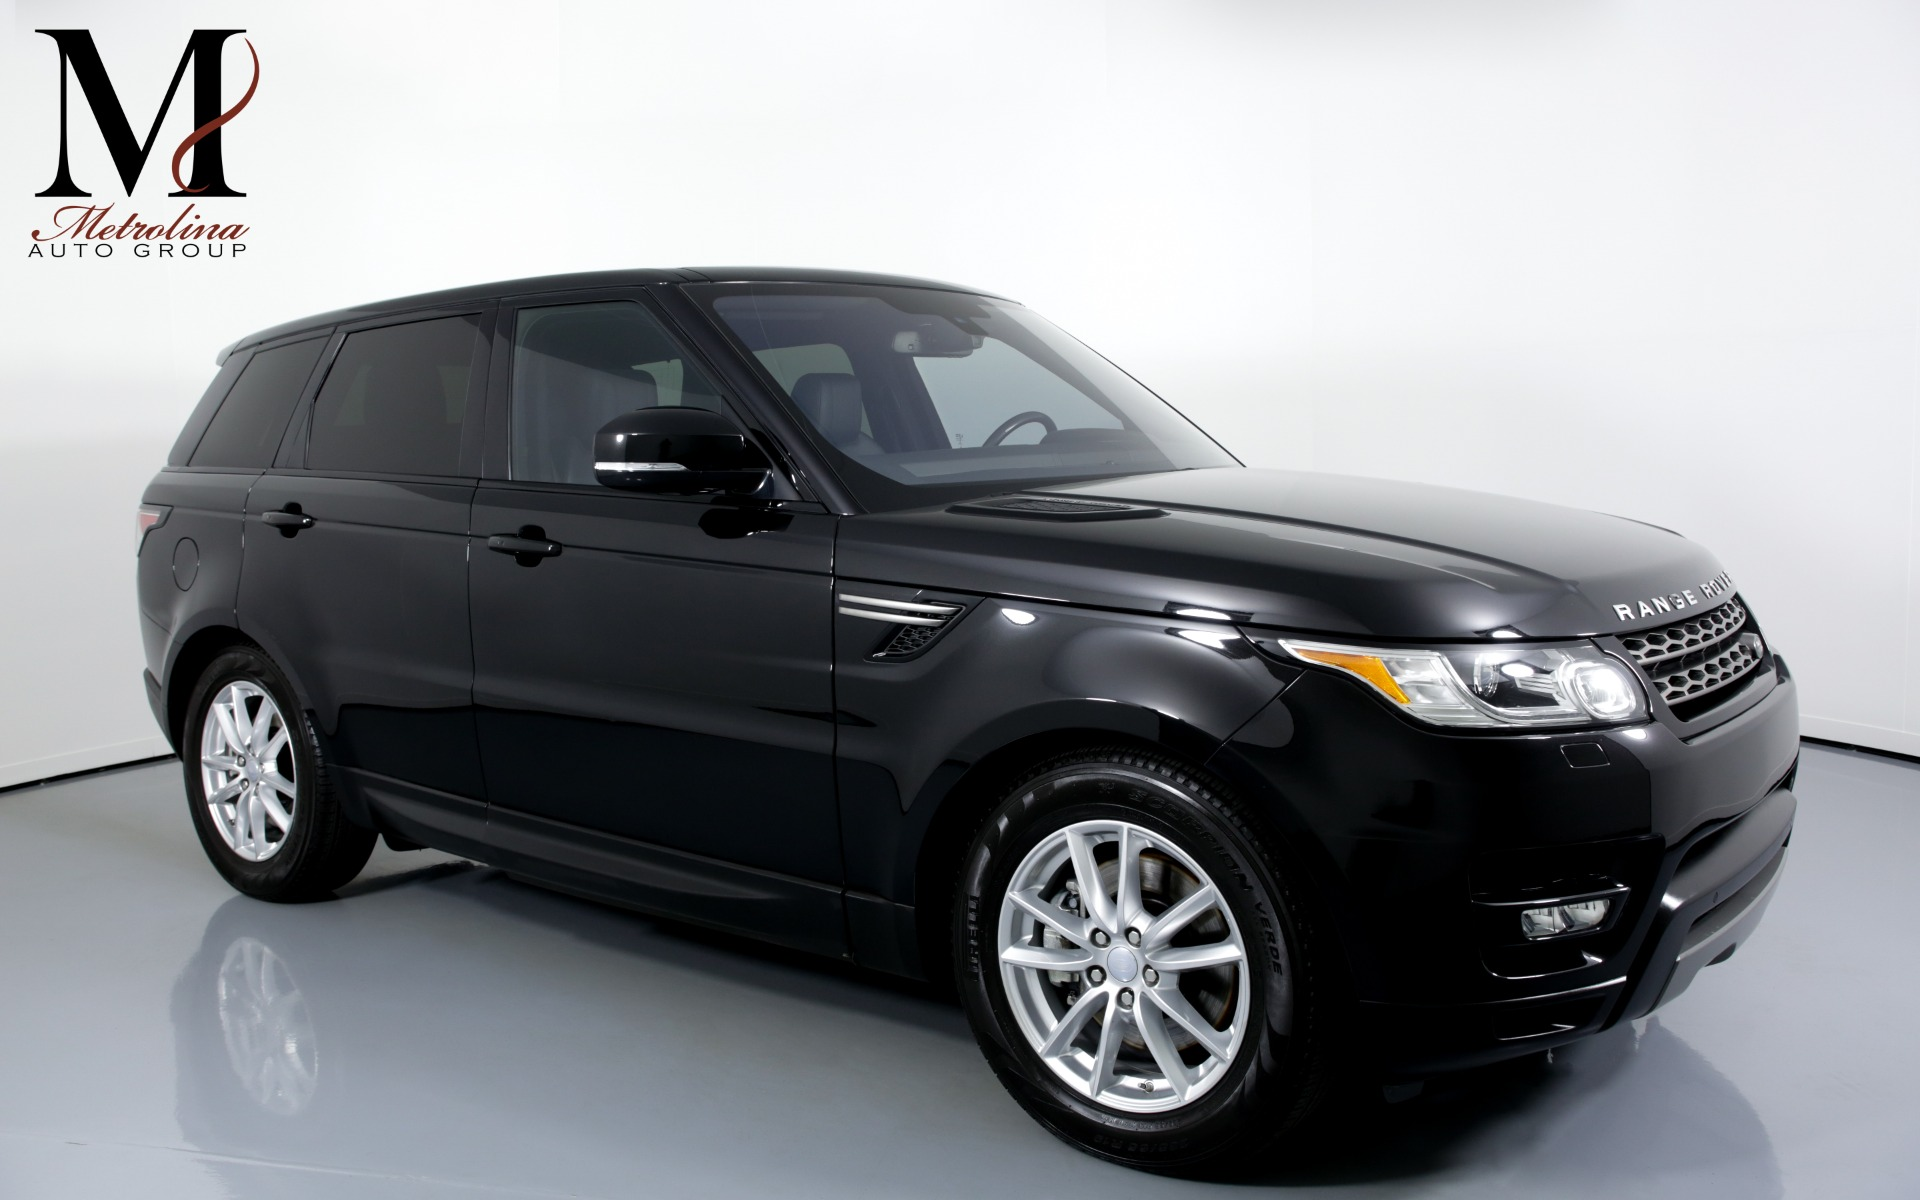 Used 2016 Land Rover Range Rover Sport SE AWD 4dr SUV for sale Sold at Metrolina Auto Group in Charlotte NC 28217 - 1